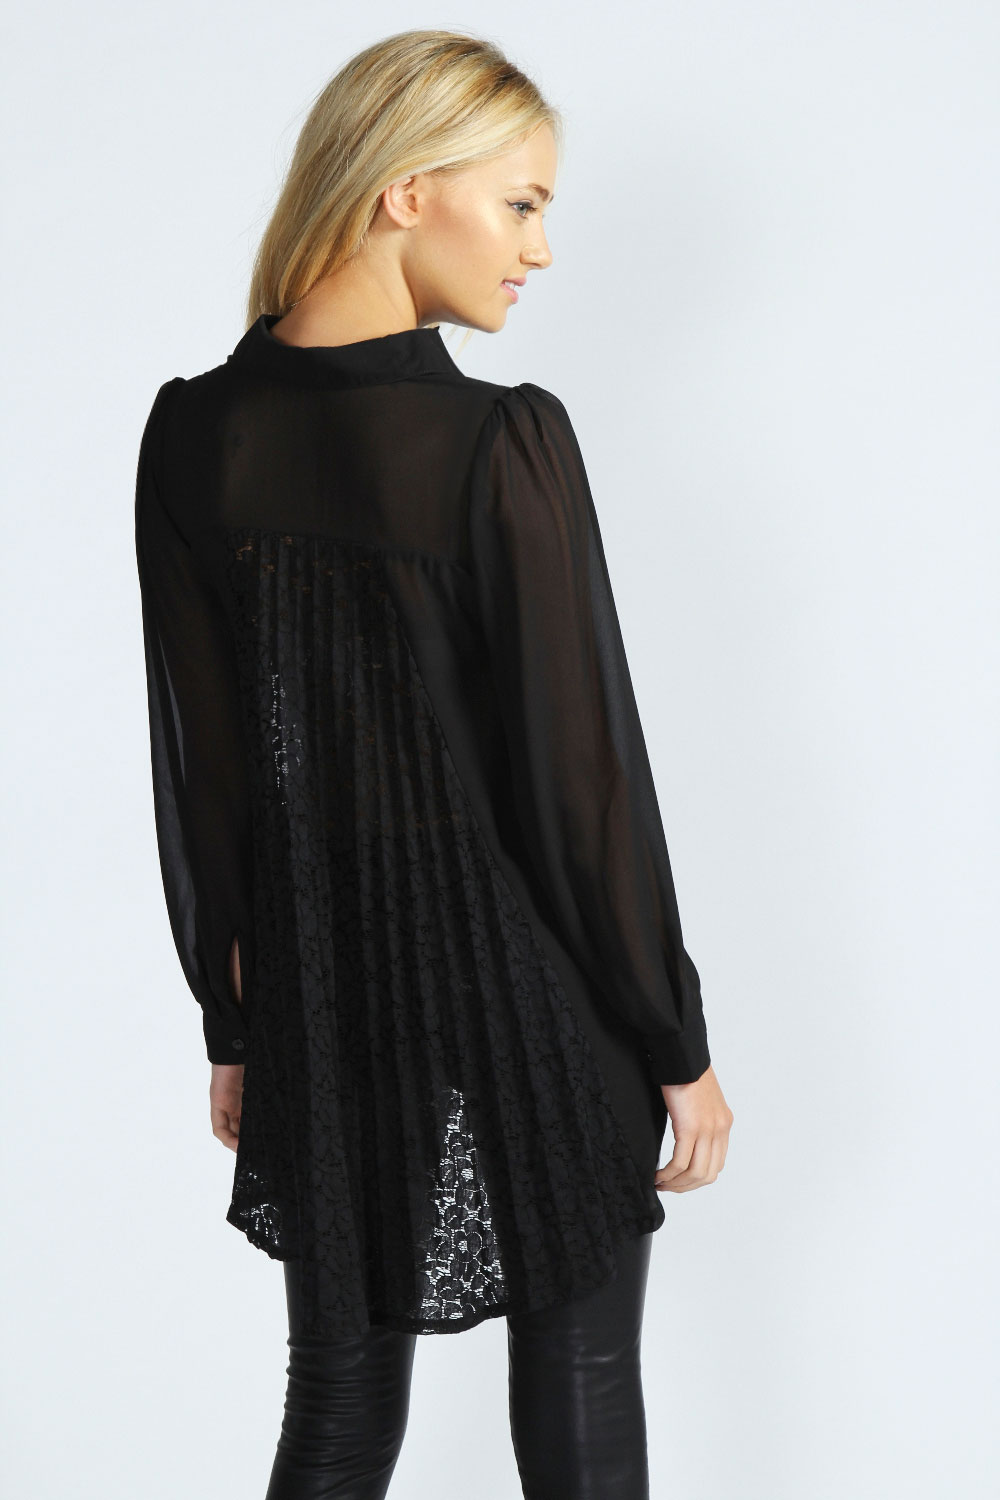 Soft Surroundings Petites Silk Floral Top - Black. The vibrant floral motif, printed on silk chiffon, pops against a black backdrop while the open front and 3/4 sleeves add to this tops .